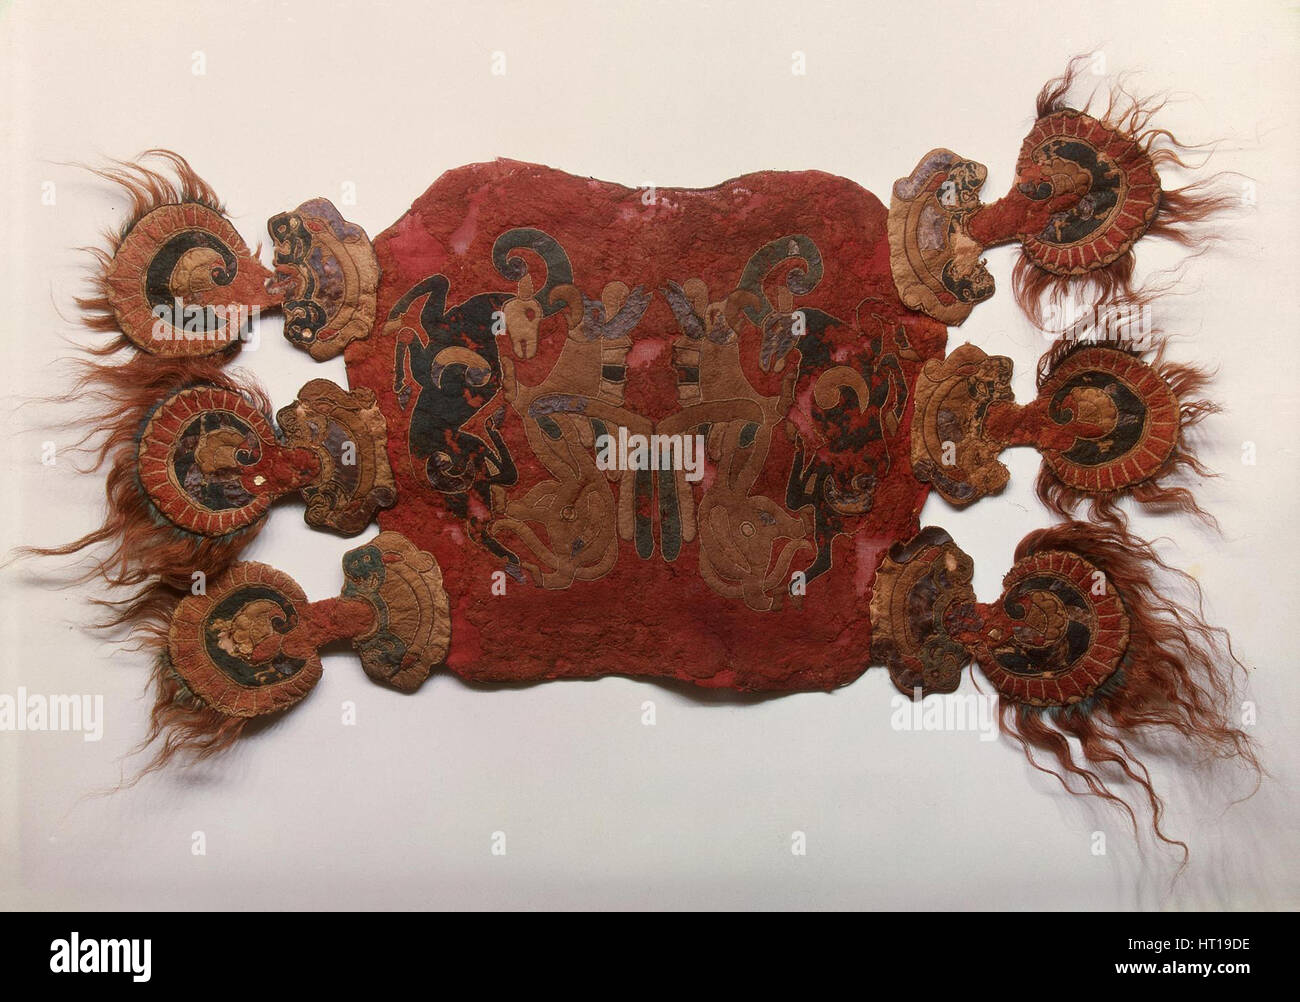 Saddle Cover, 5th cen. BC. Artist: Ancient Altaian, Pazyryk Burial Mounds - Stock Image